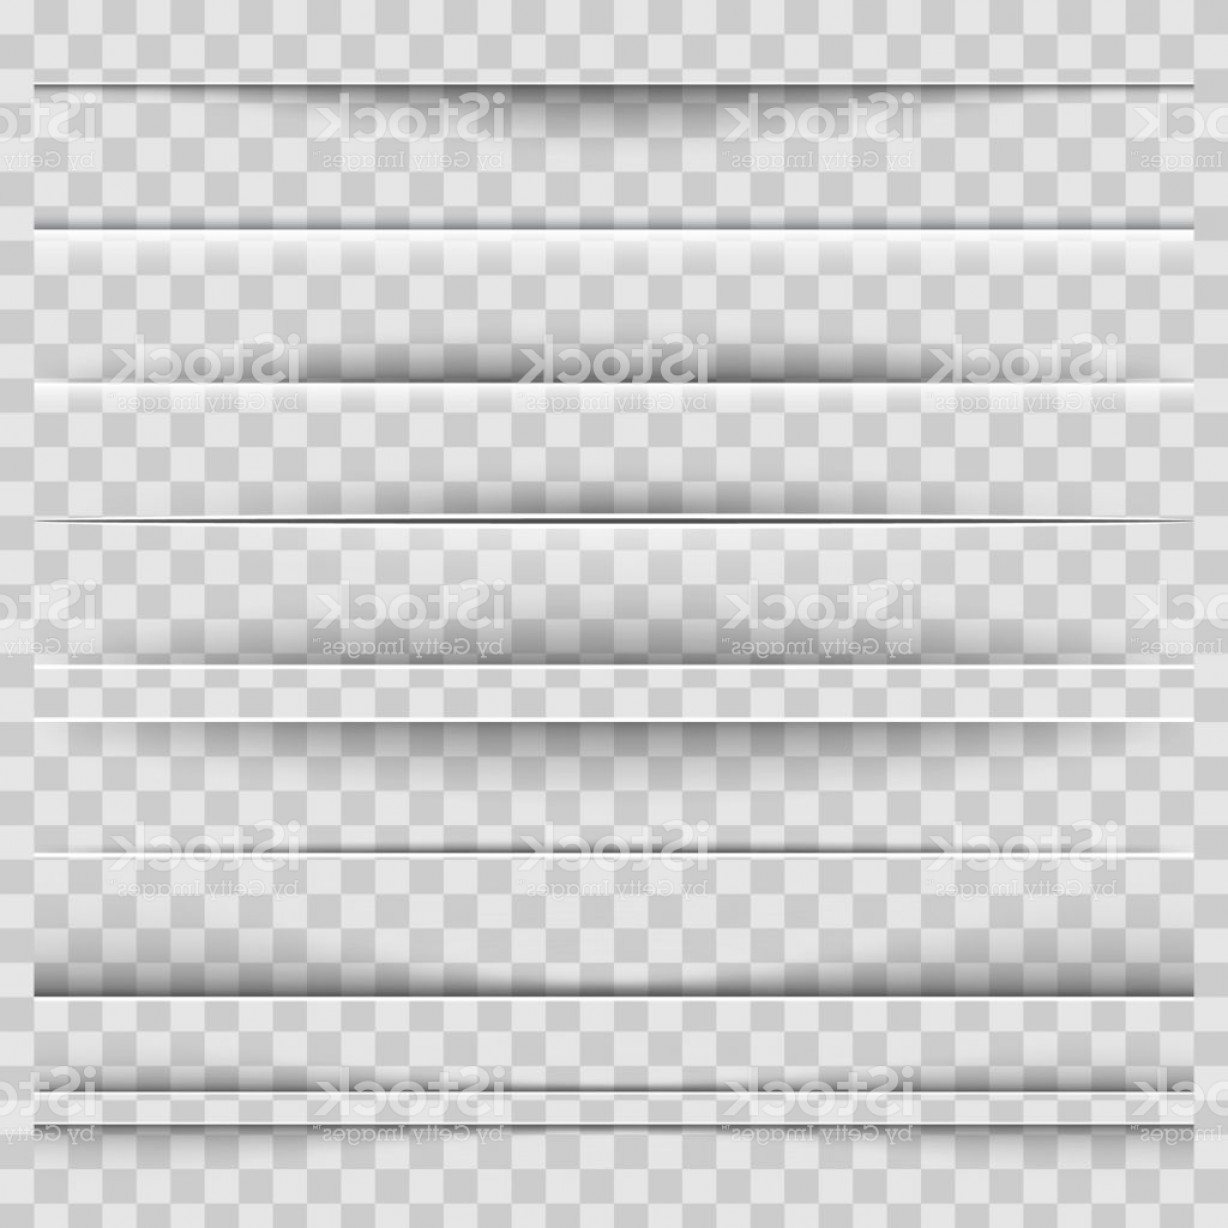 Vector Line Dividers Transparent Backgrounds: Creative Vector Illustration Of Realistic Paper Shadow Dividers Isolated On Gm